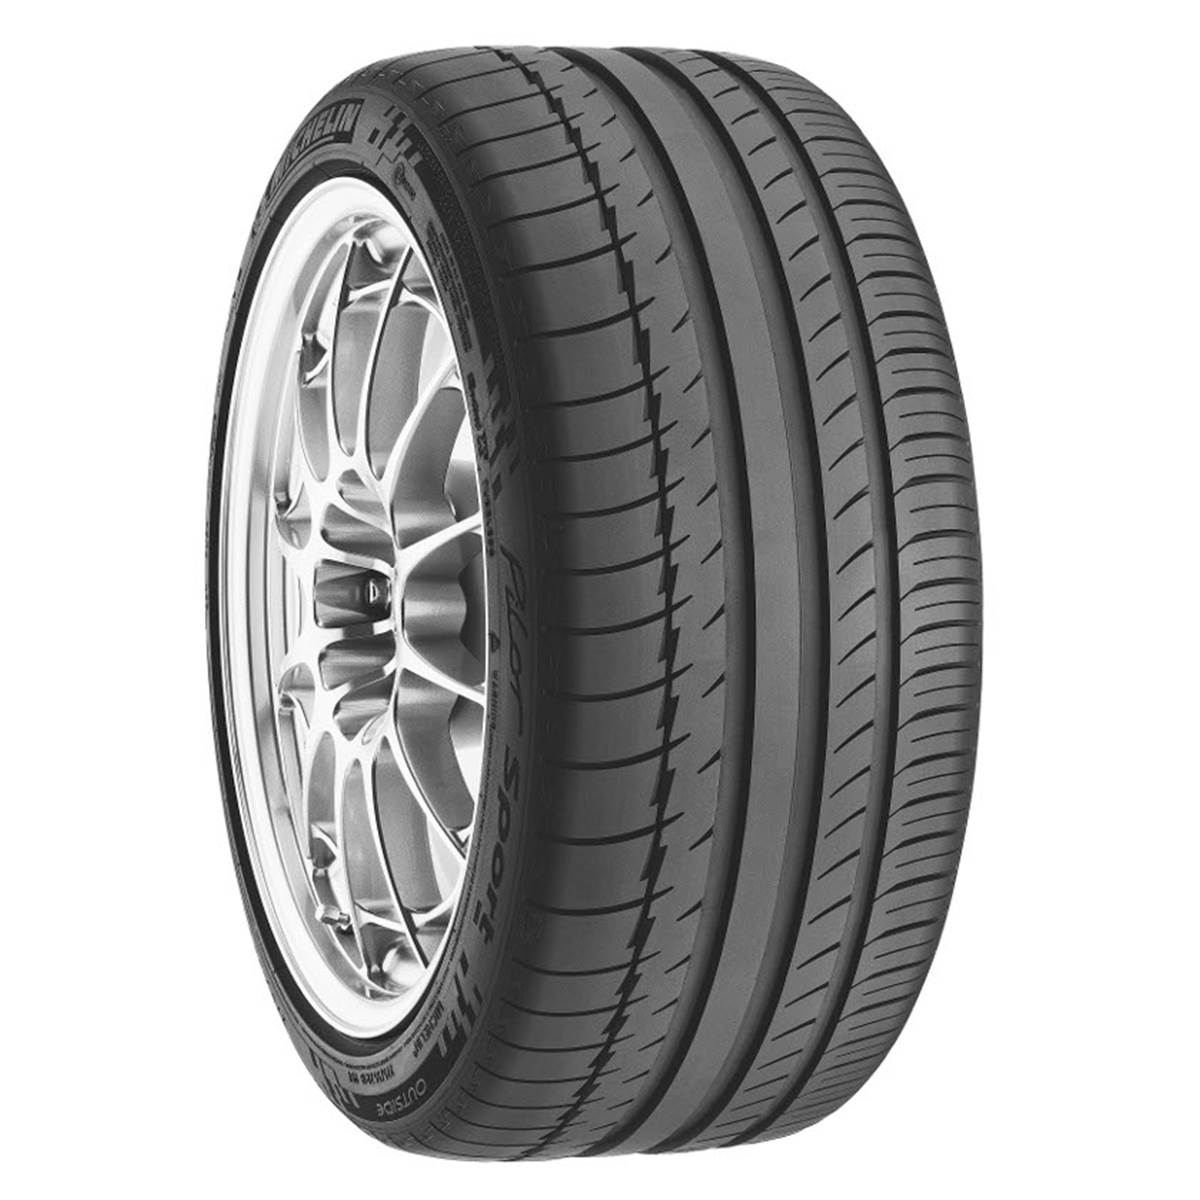 Pneu Michelin 295/30R18 98Y Pilot Sport Ps2 XL